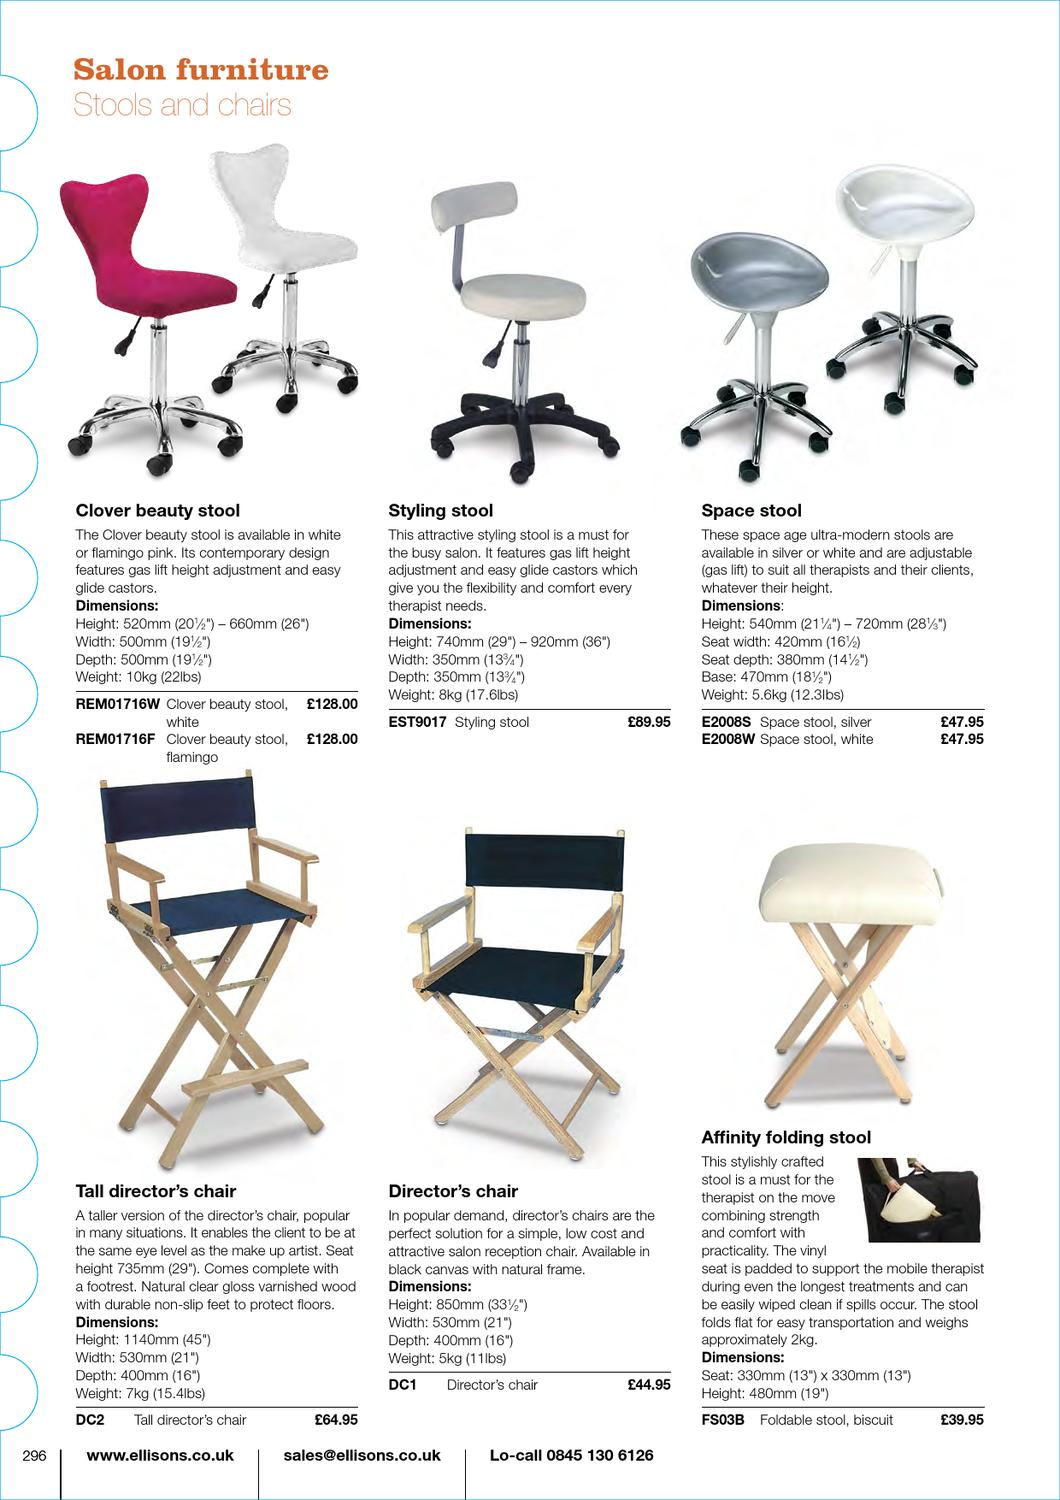 Wondrous Ellisons Directory 2013 2014 By Ellisons Issuu Squirreltailoven Fun Painted Chair Ideas Images Squirreltailovenorg